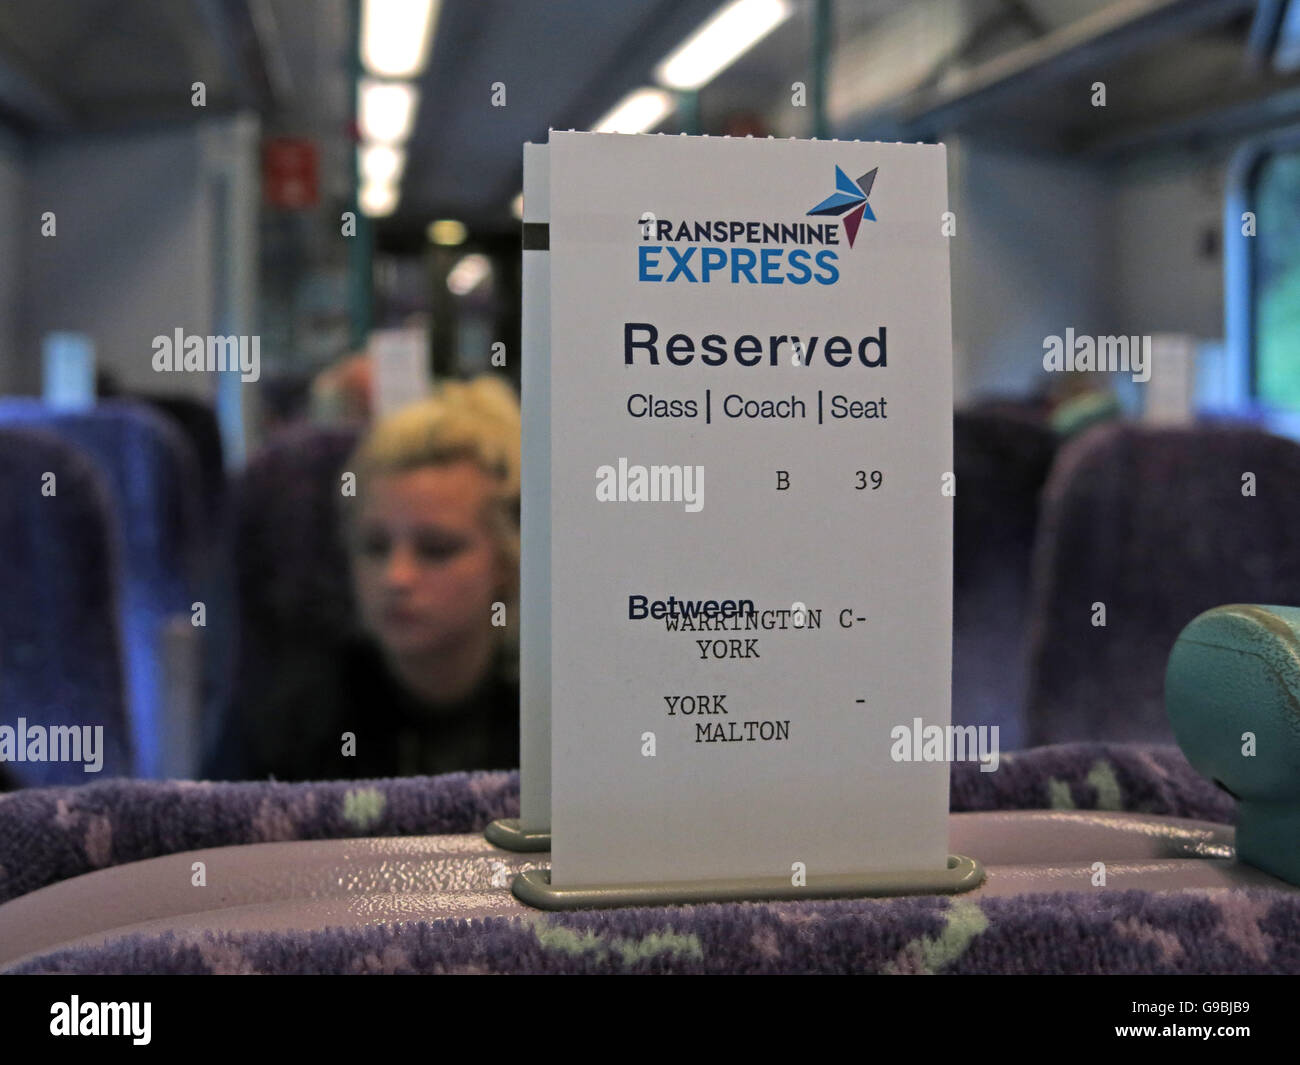 Transpennine Express Reservation,on train to York from Liverpool,England,UK - Stock Image